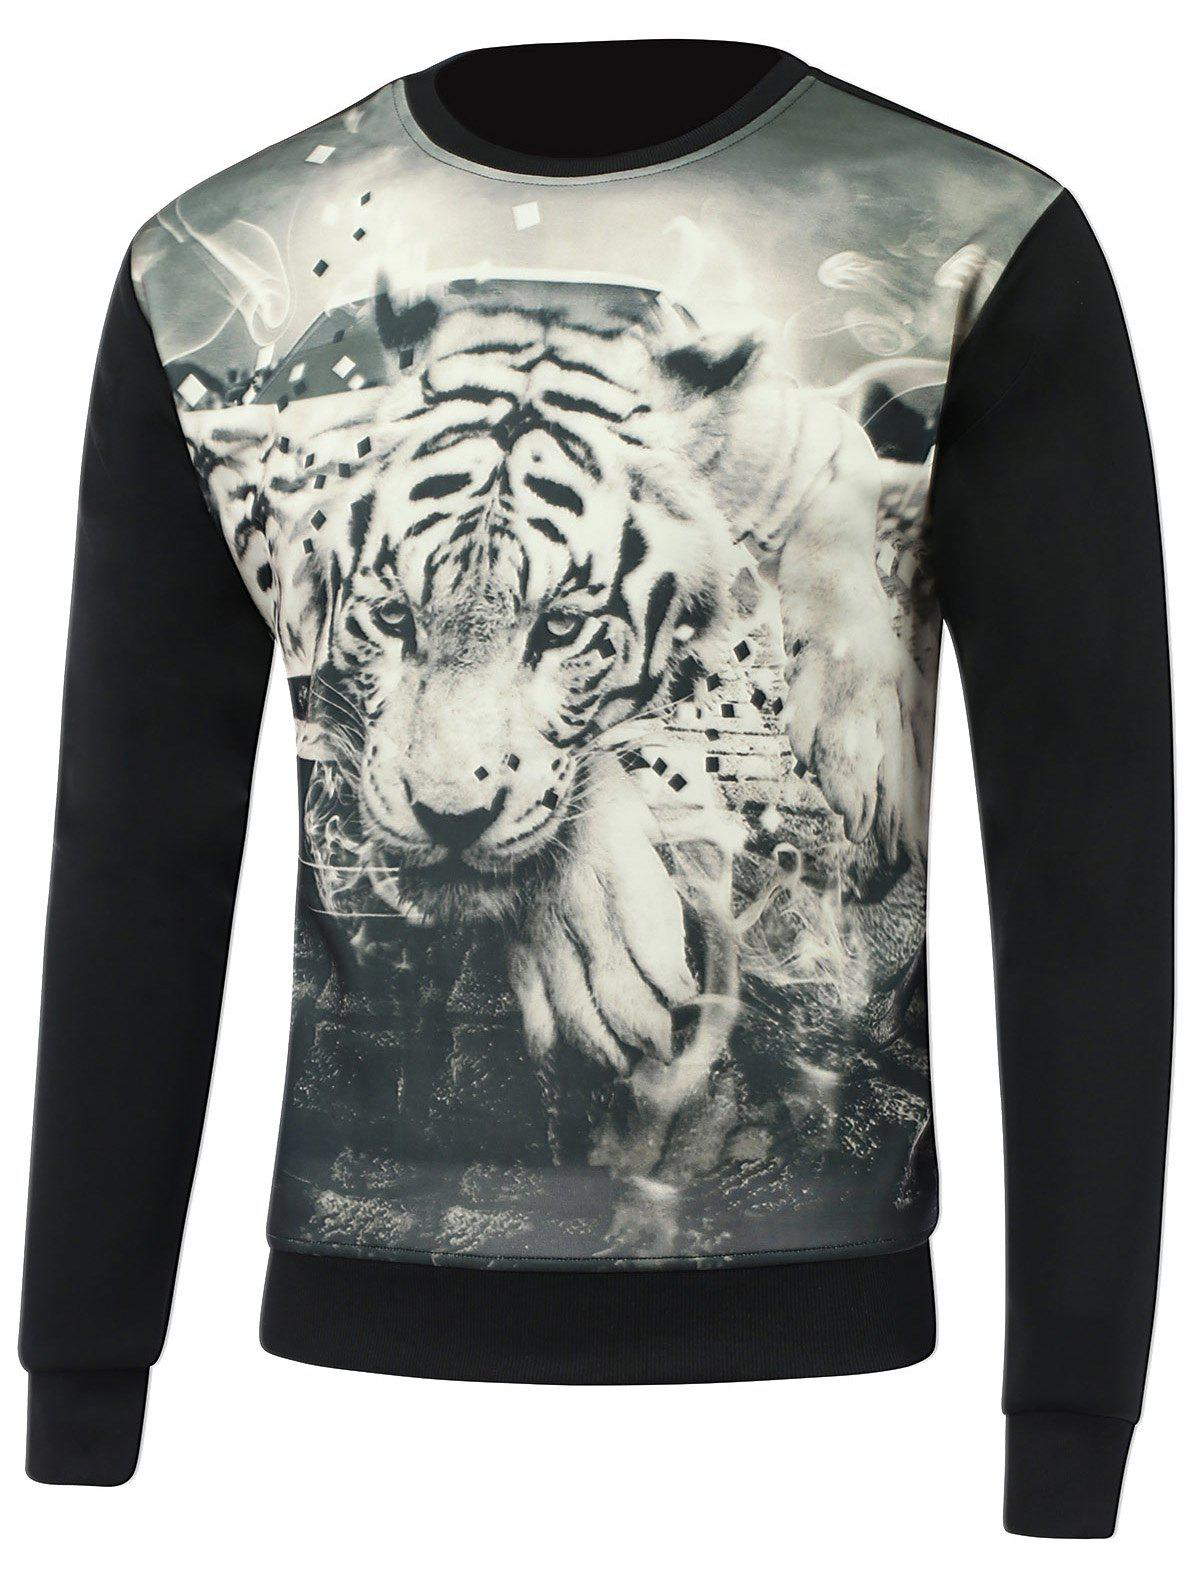 3D Tiger Print Round Neck Long Sleeve Sweatshirt round neck long sleeve 3d coins print sweatshirt